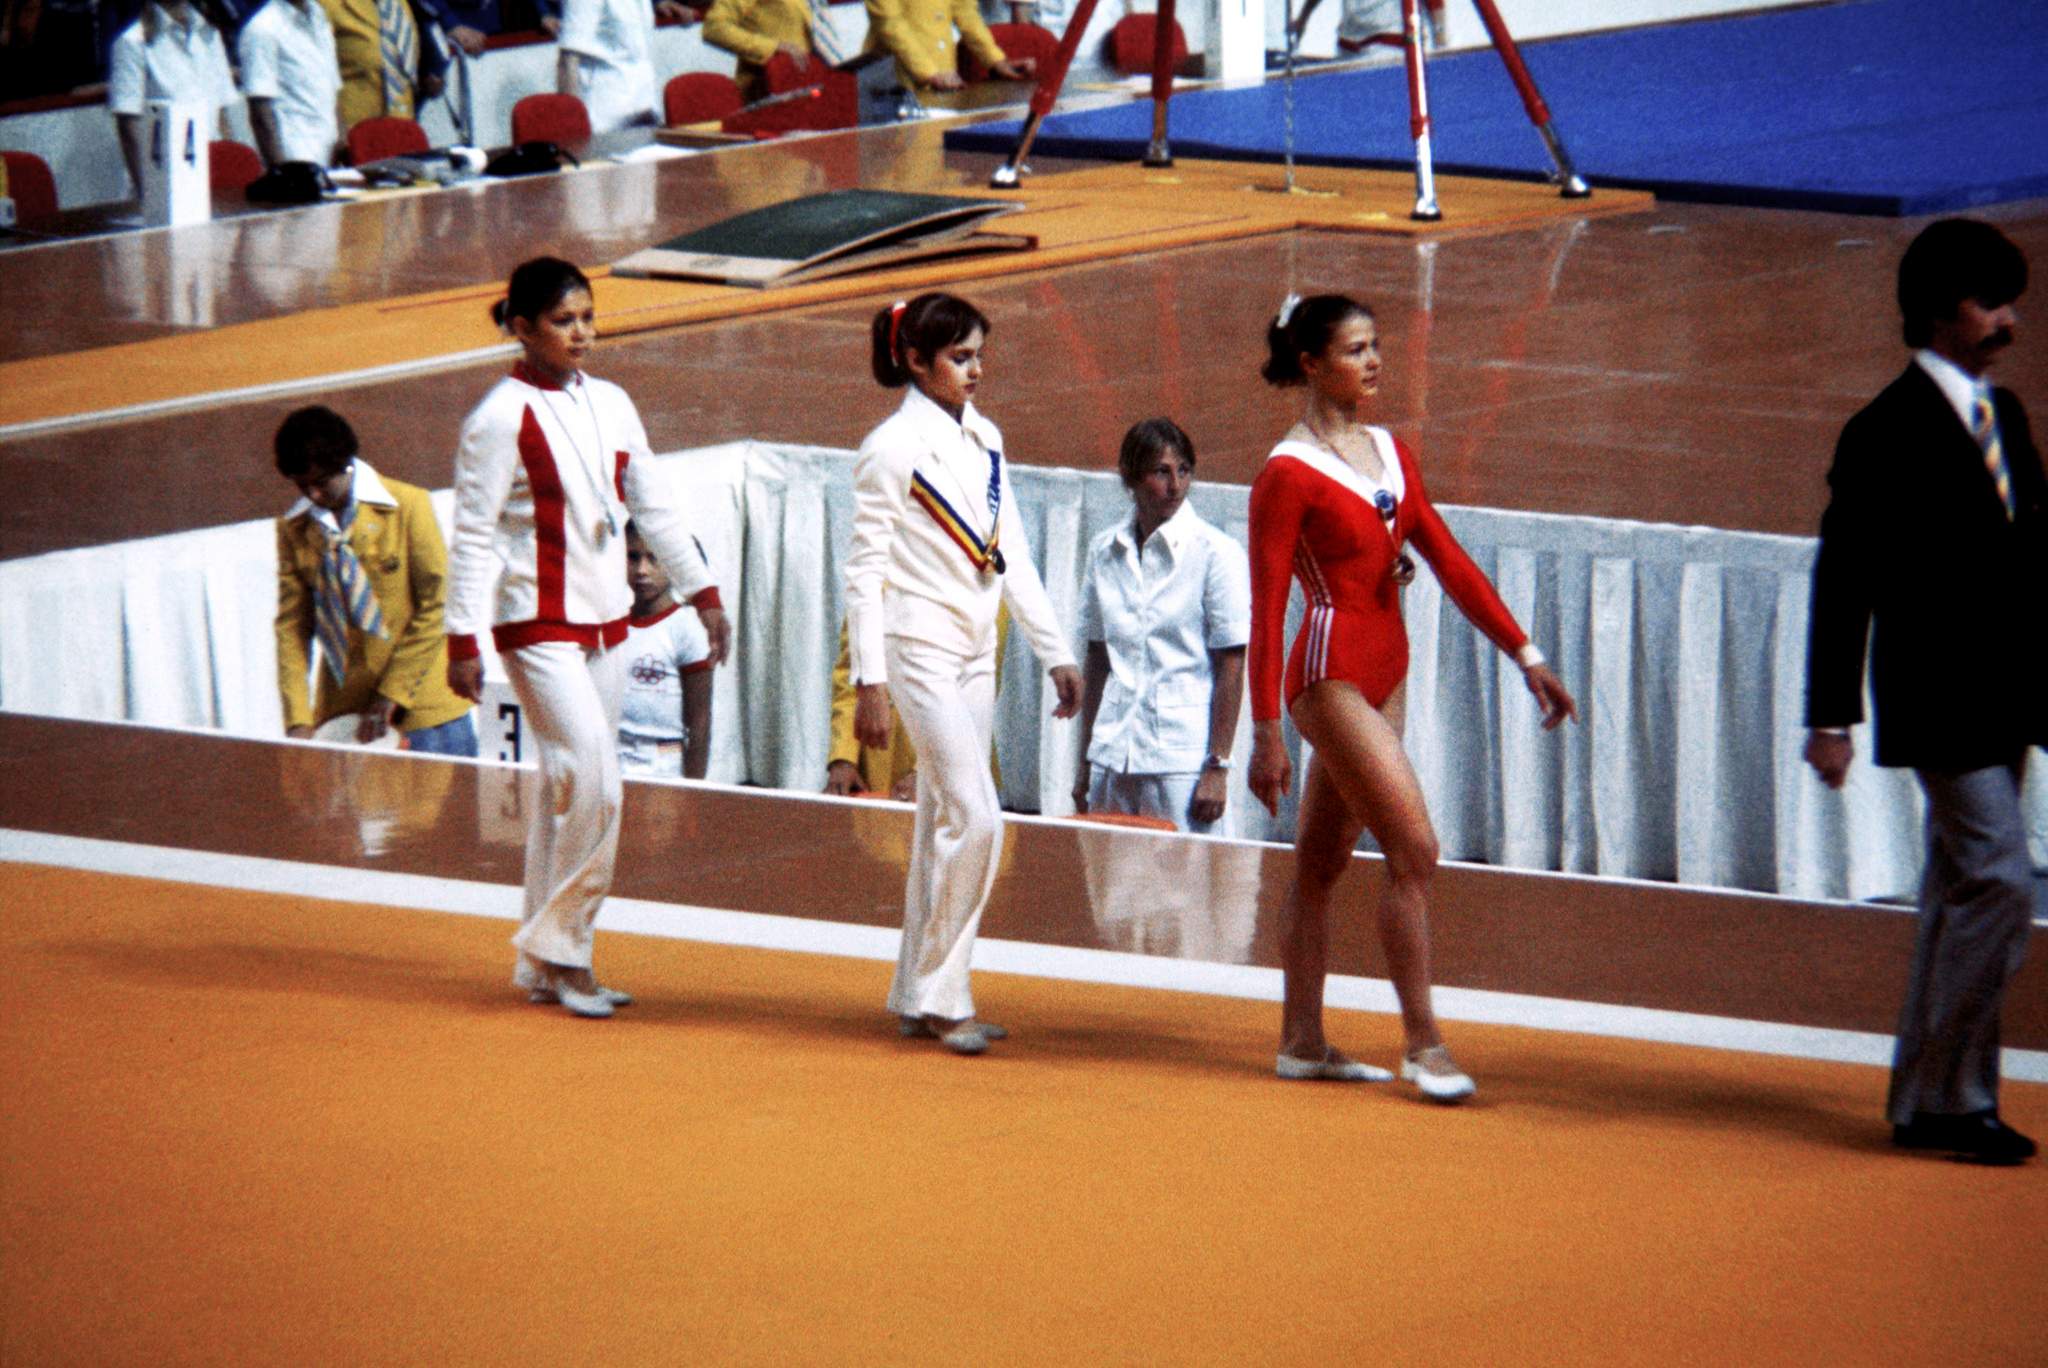 The women's all-around medalists in 1976